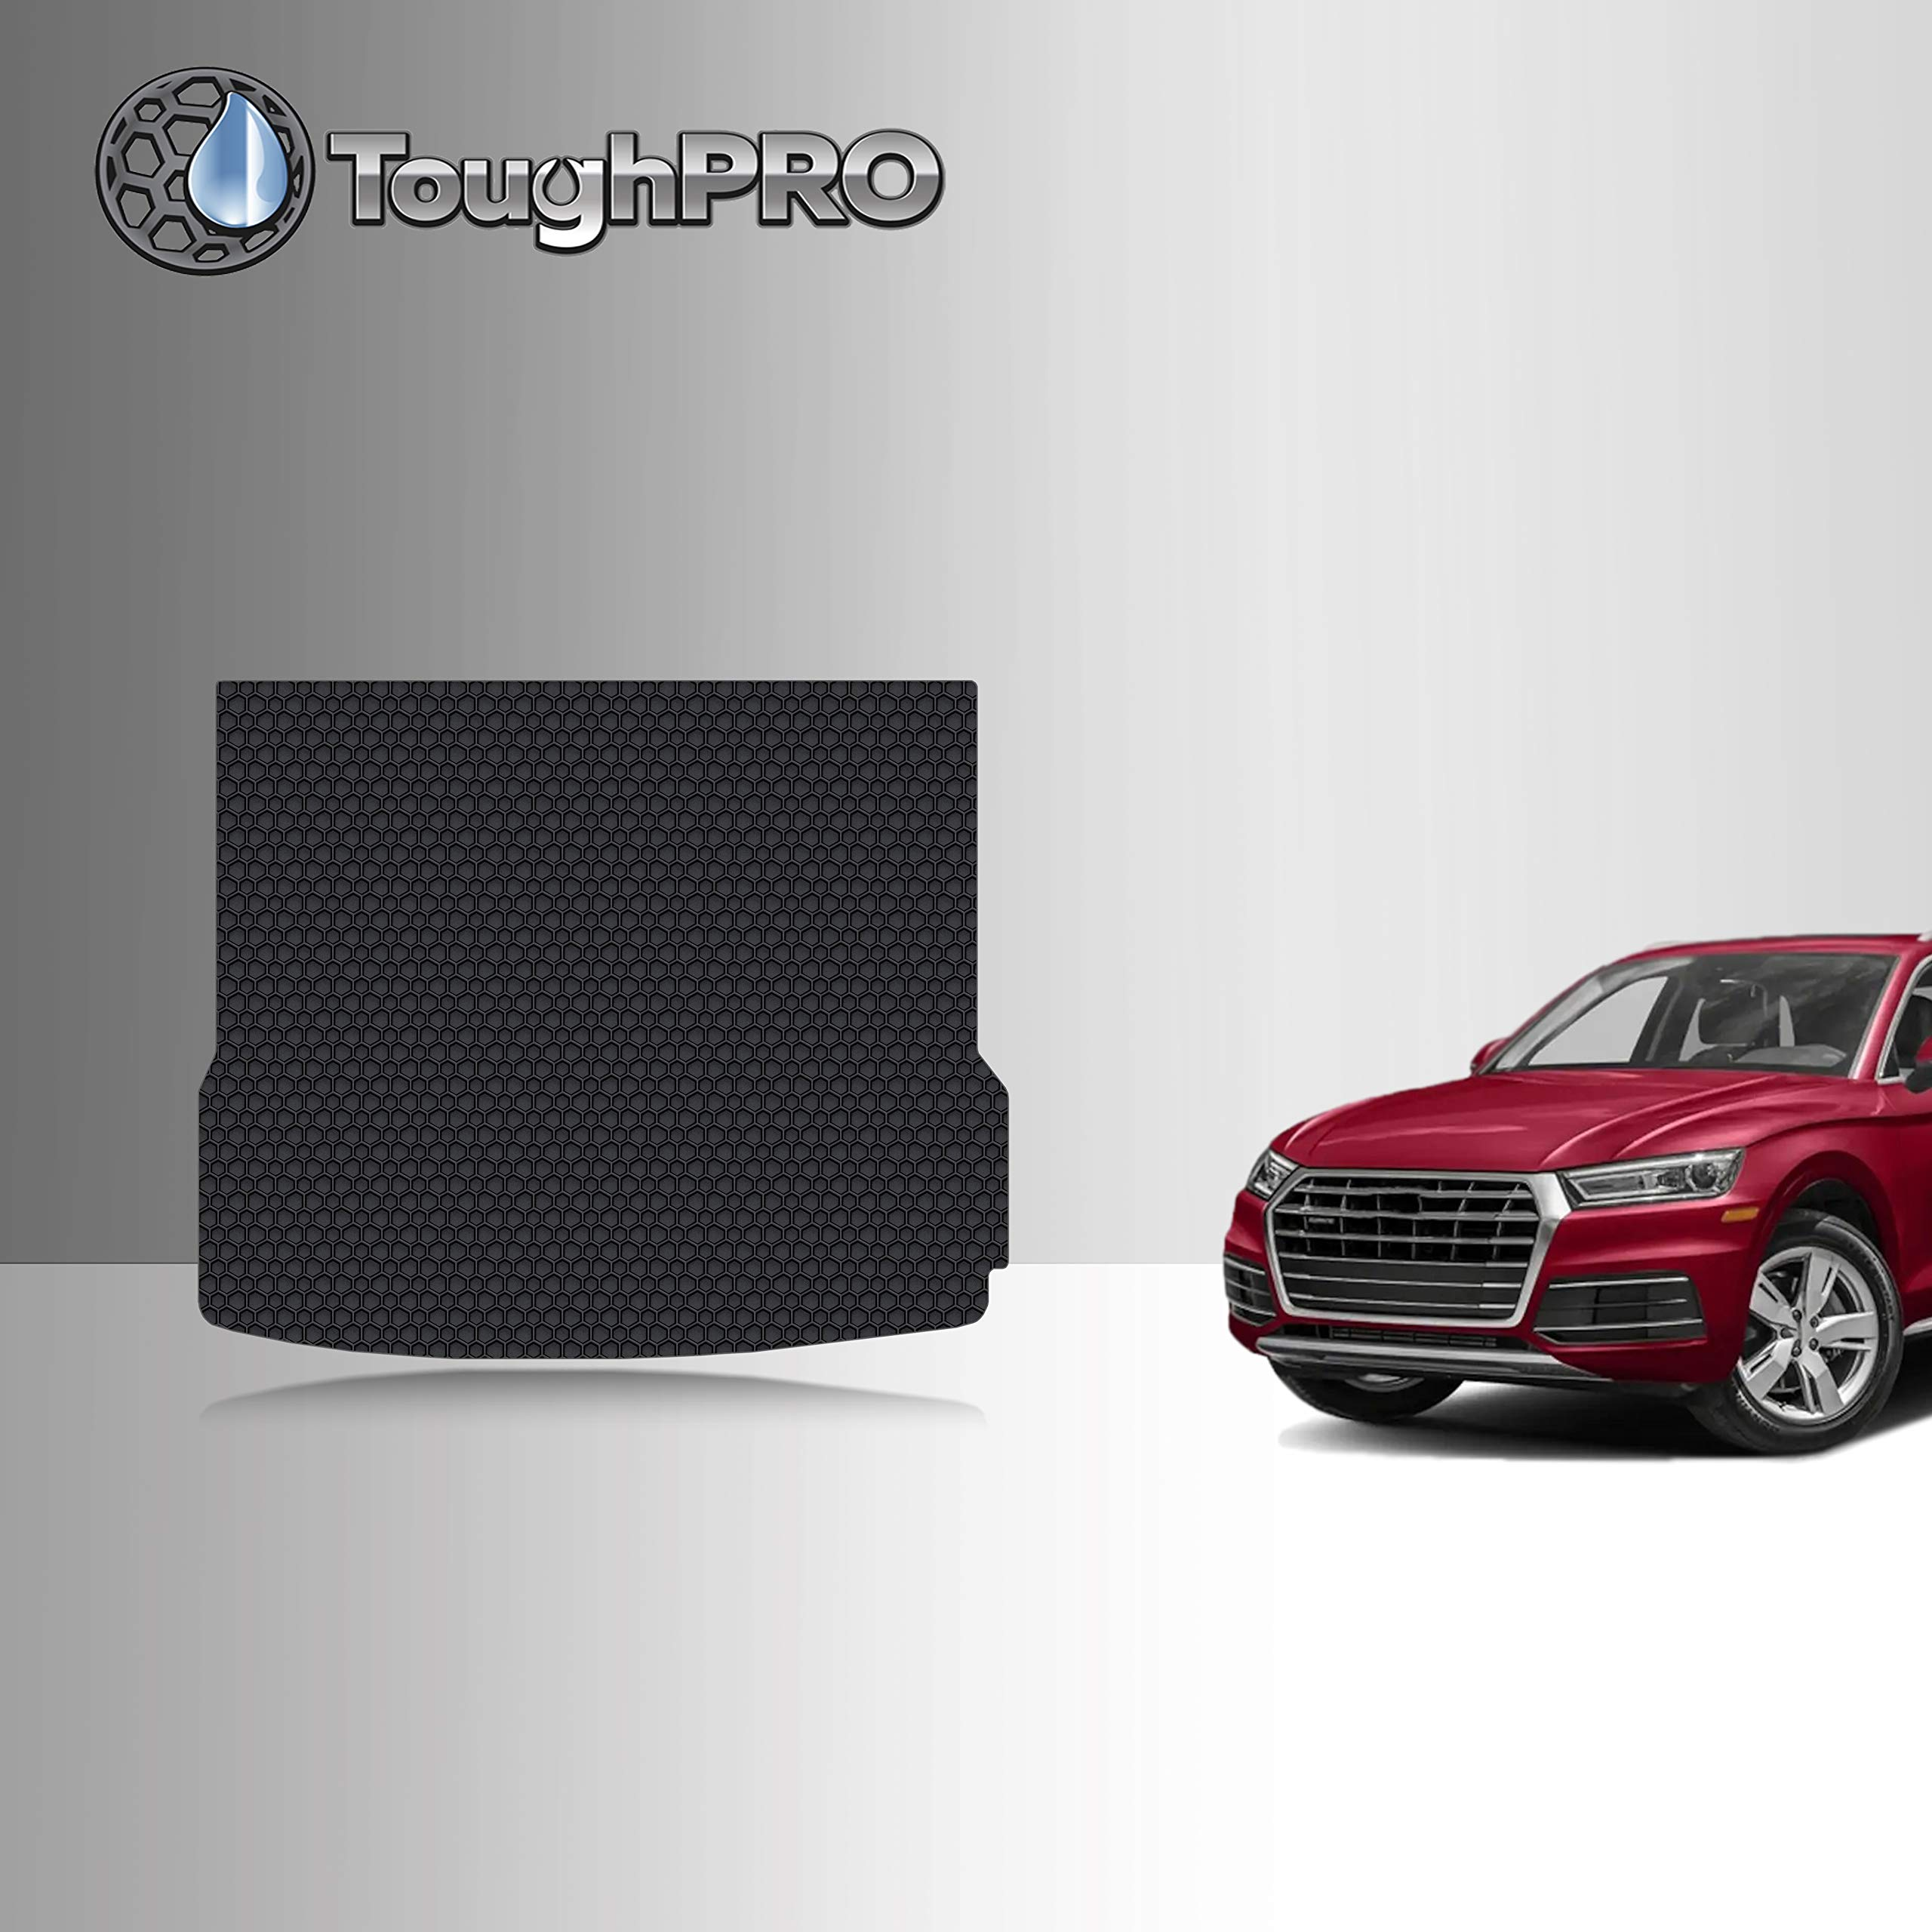 TOUGHPRO Cargo/Trunk Mat Accessories Compatible with Audi Q5 - All Weather - Heavy Duty - (Made in USA) - Black Rubber - 2009, 2010, 2011, 2012, 2013, 2014, 2015, 2016, 2017